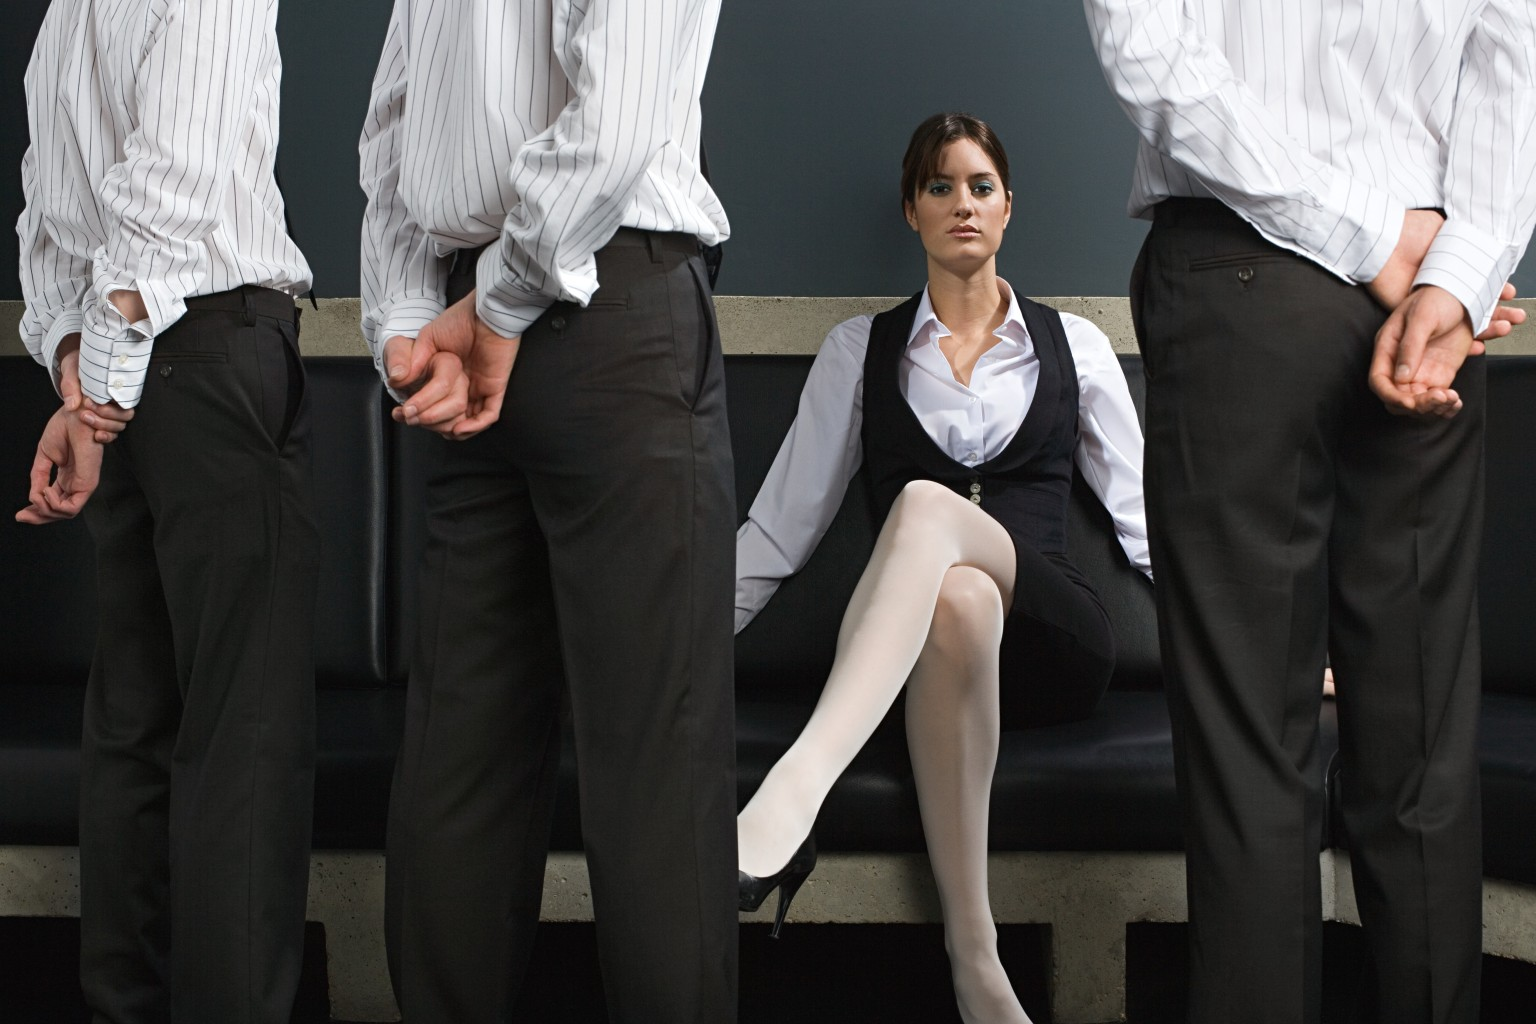 male dominated business This article originally appeared in the long beach business journal on october  23, 2017 and was written by brandon richardson, senior writer after years with .